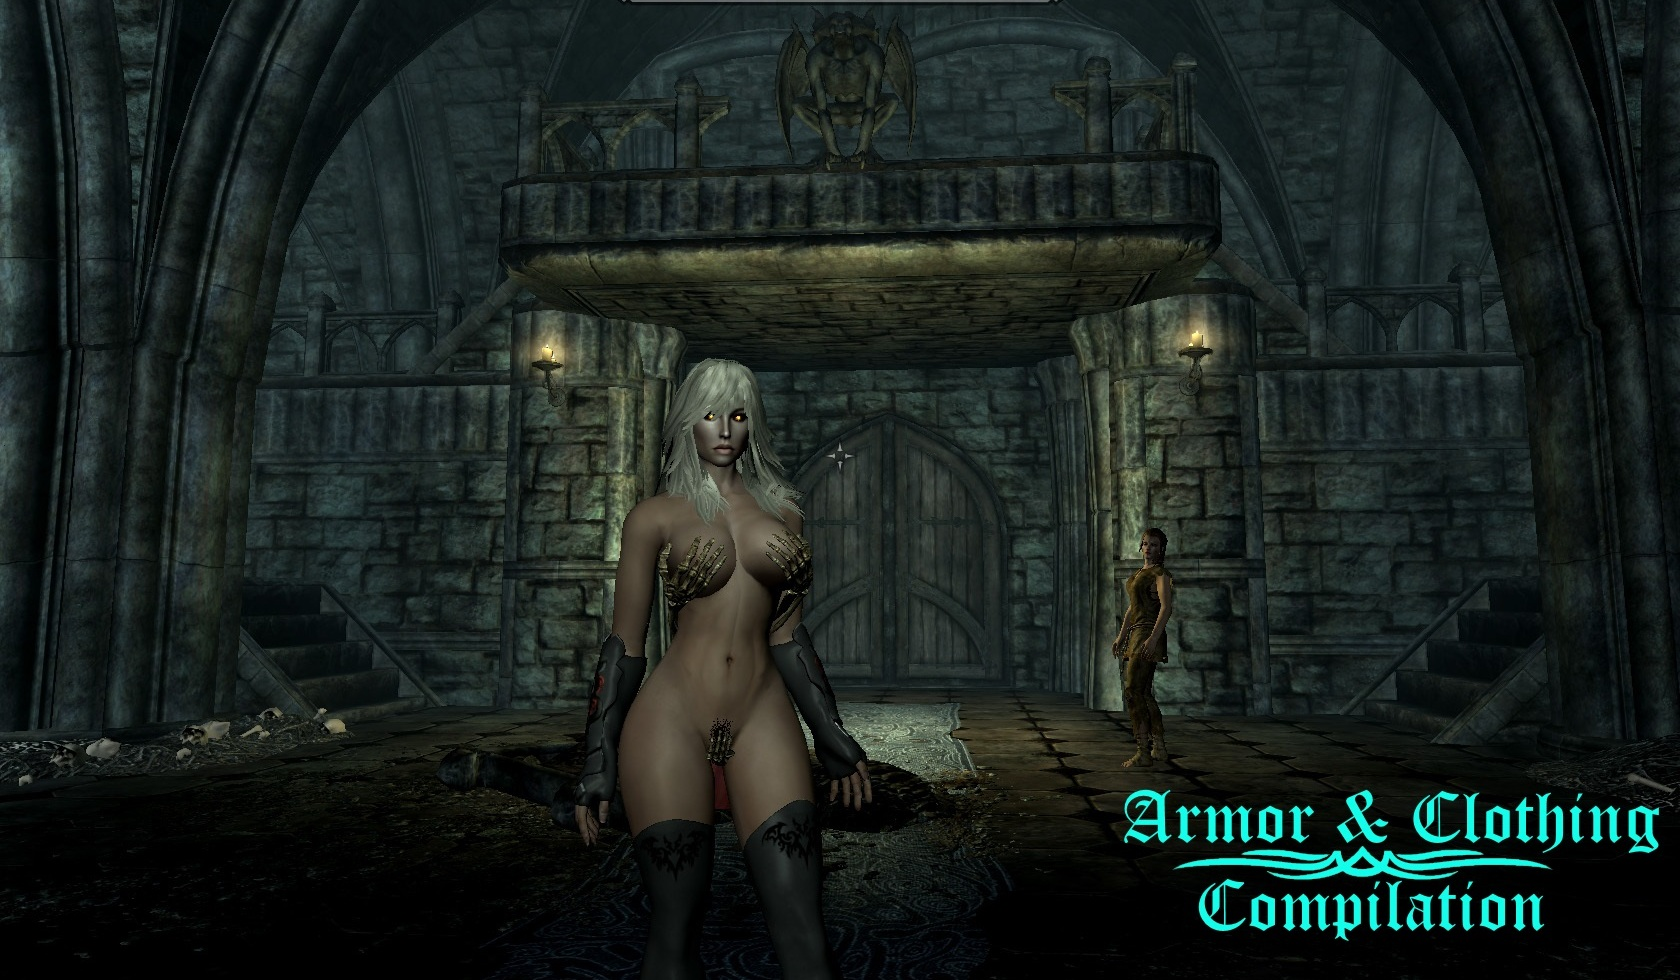 Armor_&_Clothing_Compilation_00.jpg